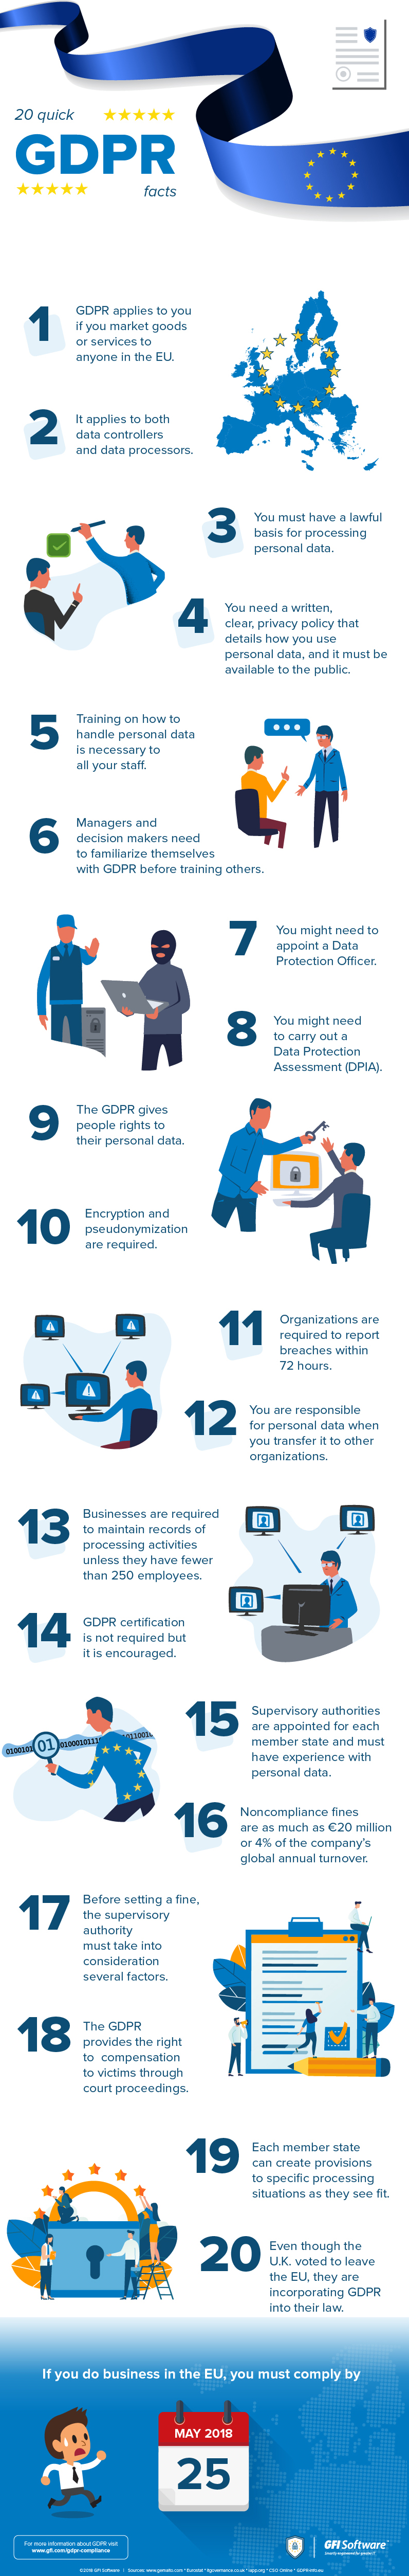 GDPR - 20 quick facts at 20 days til the deadline Infographic